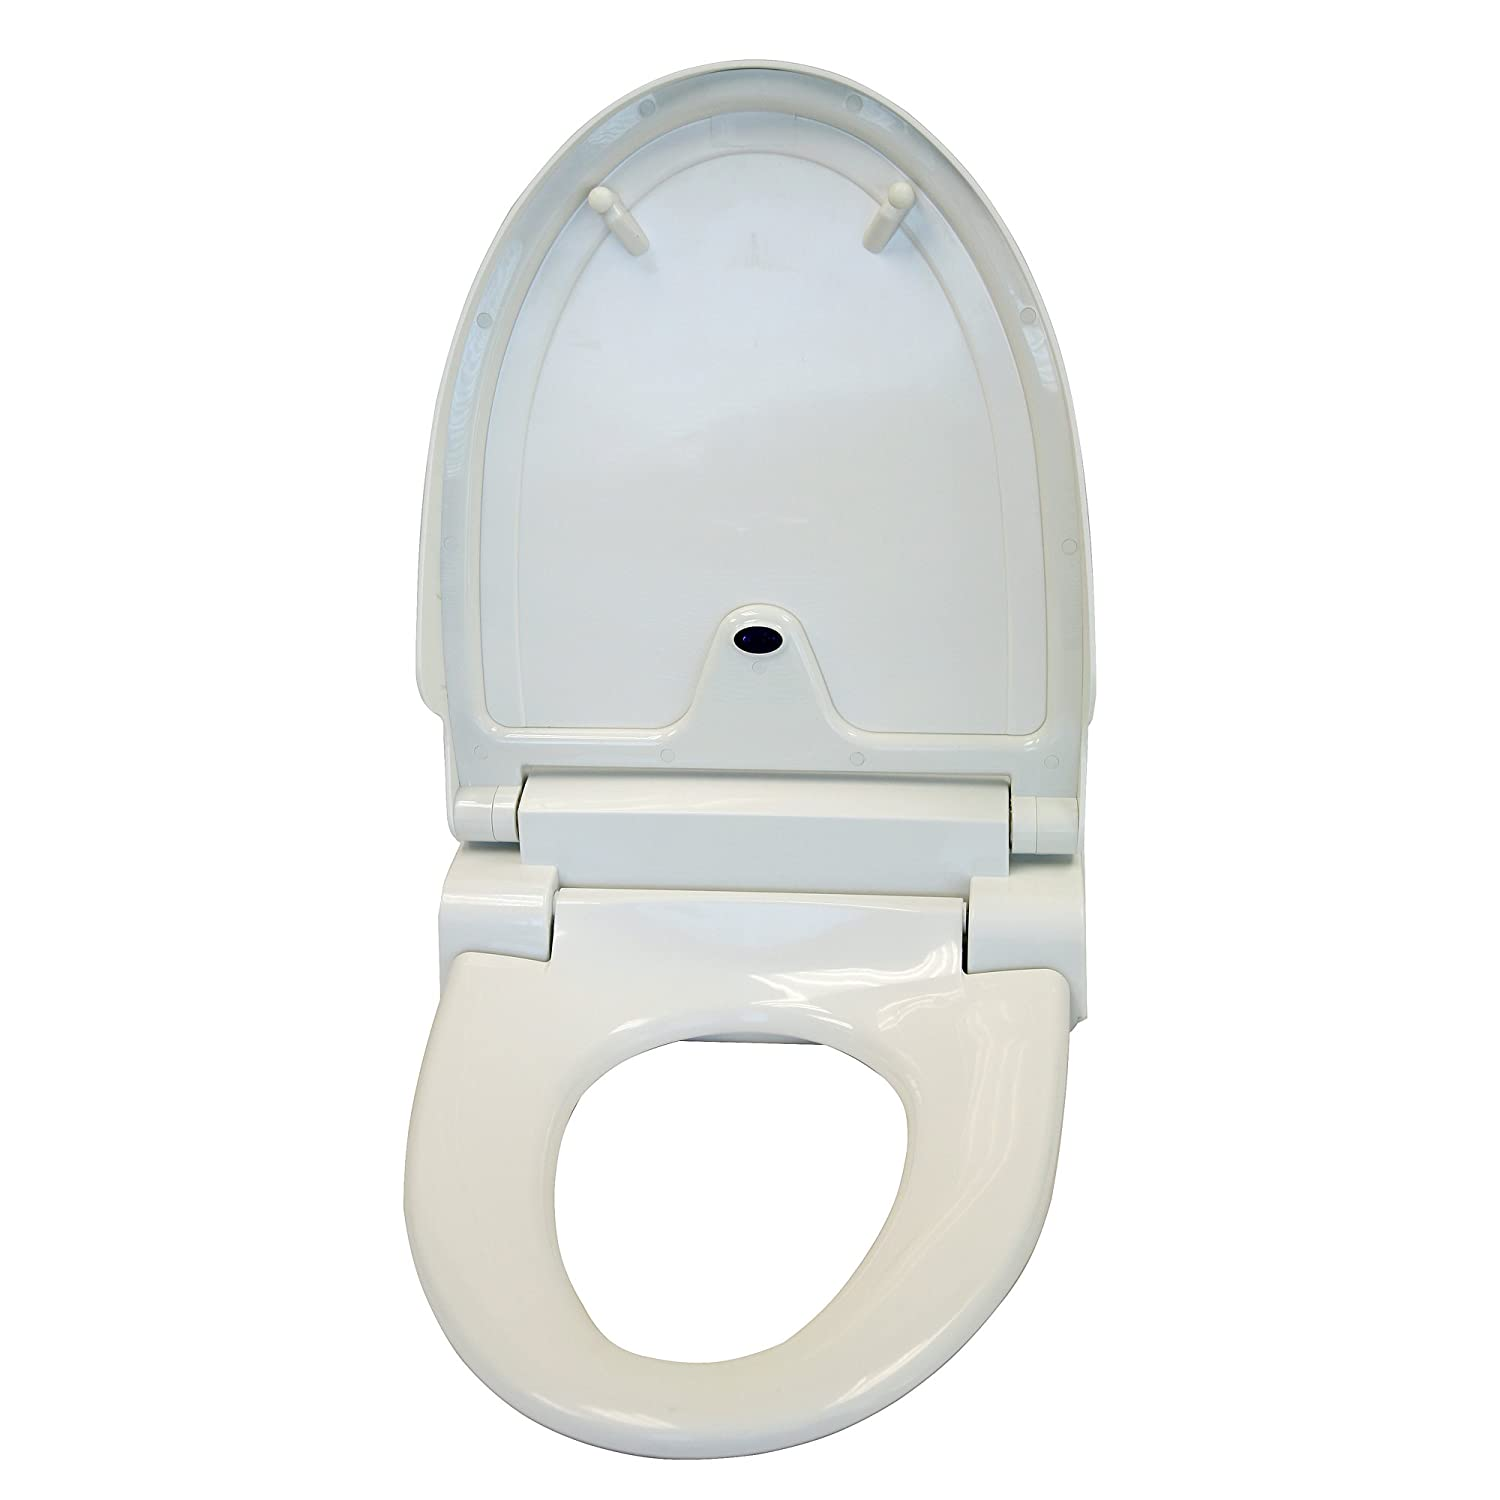 self opening toilet seat. Amazon com  iTouchless Touch Free Sensor Controlled Automatic Toilet Seat Elongated Model Off White Home Kitchen